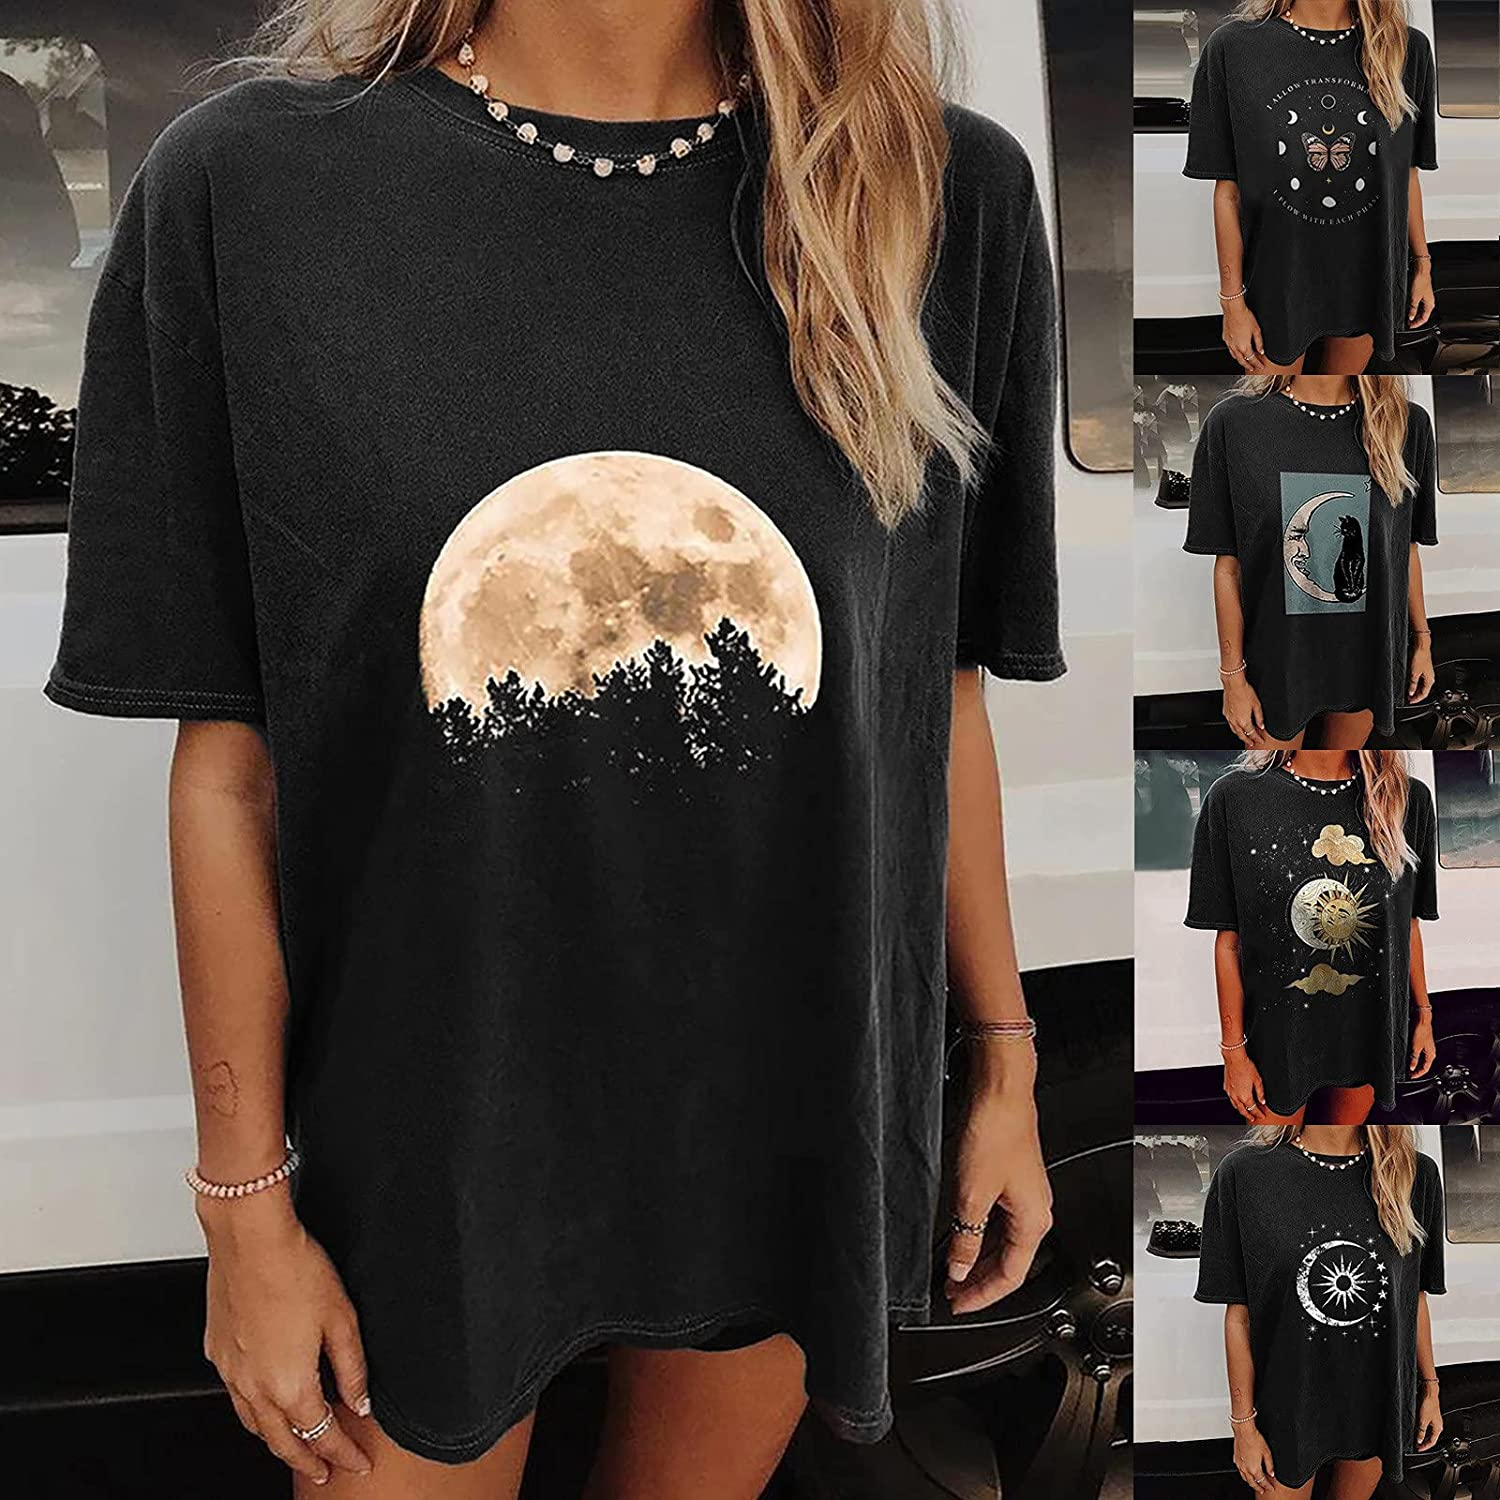 Womens Fashion Summer Casual T Shirt, Loose Fitting Tunic Blouse TeeS Graphic Short Sleeve Tops